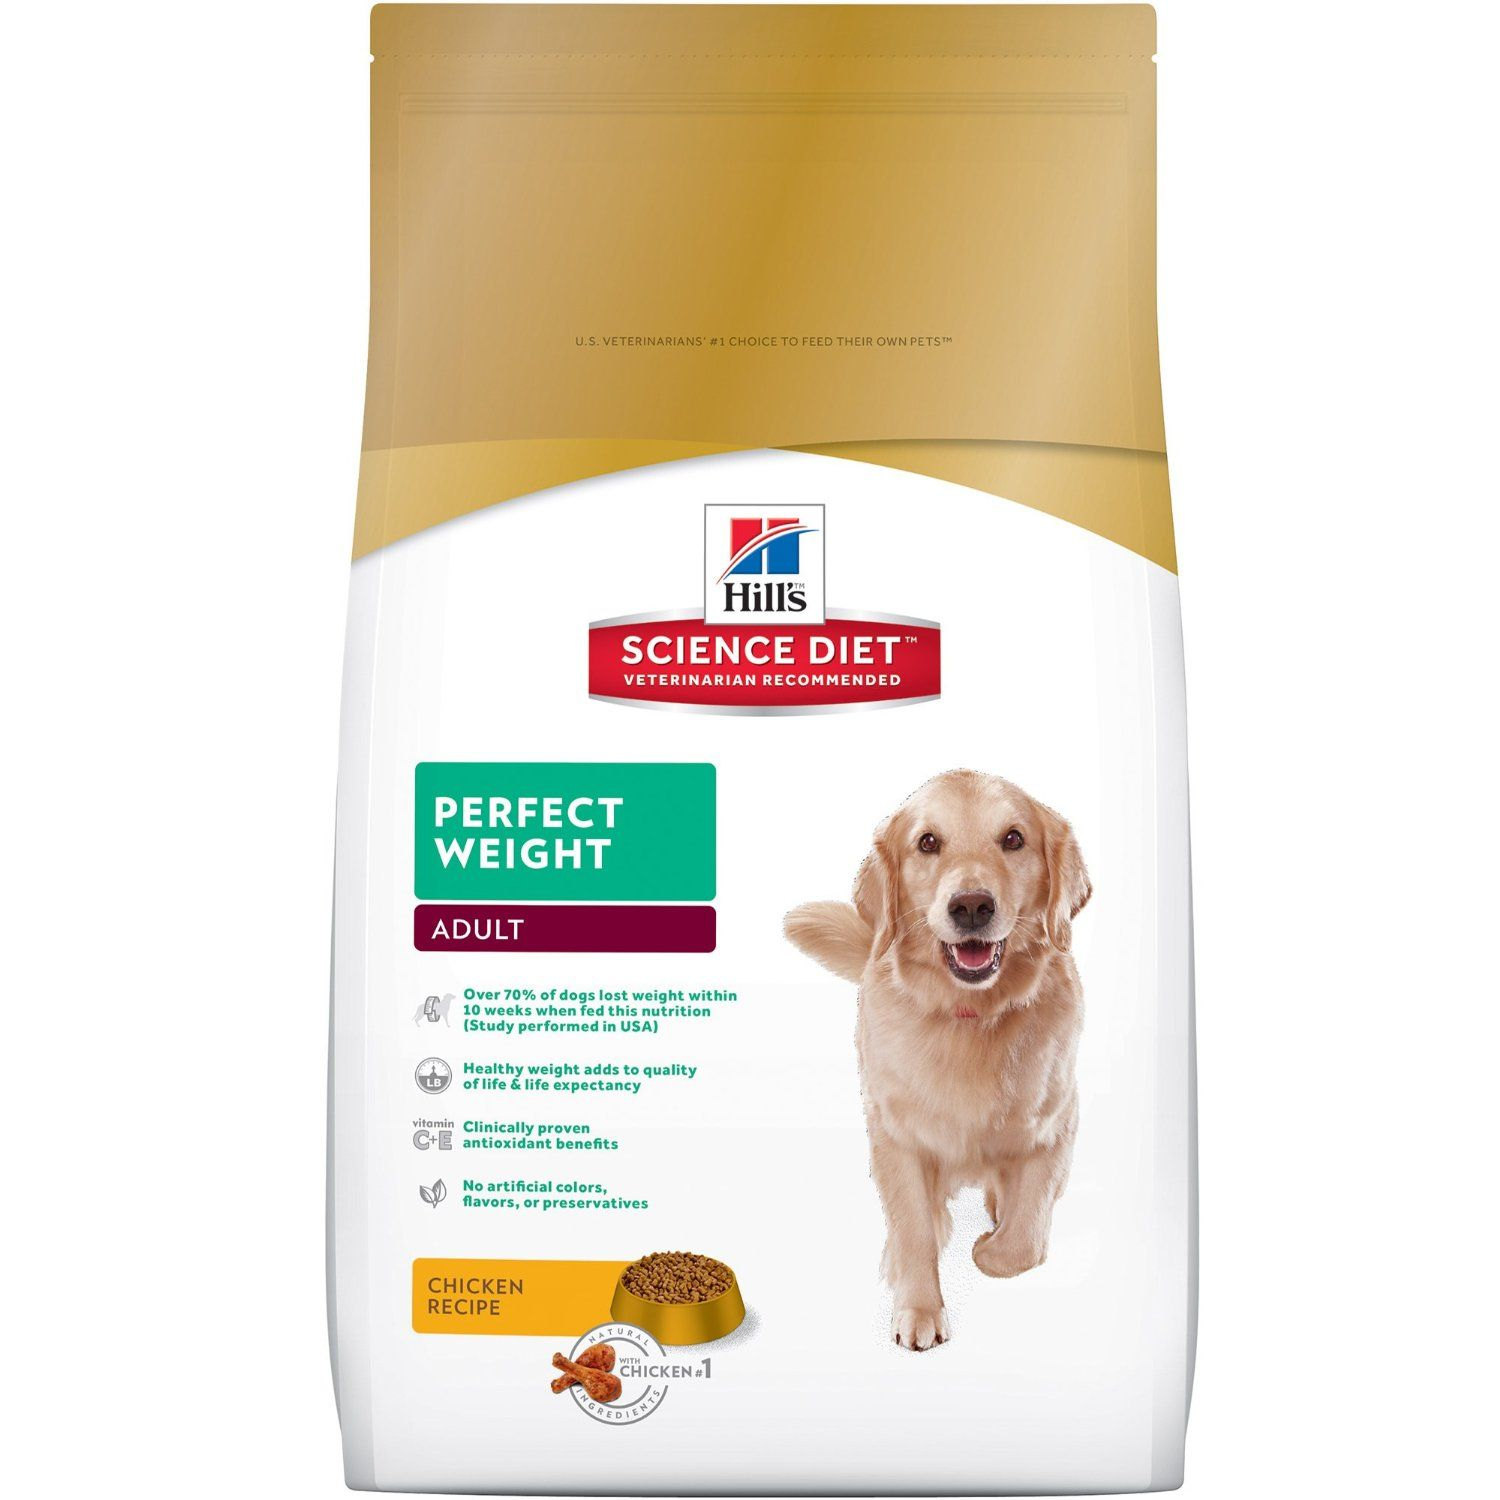 Hill's Science Diet Perfect Weight Dry Dog Food >>> Review